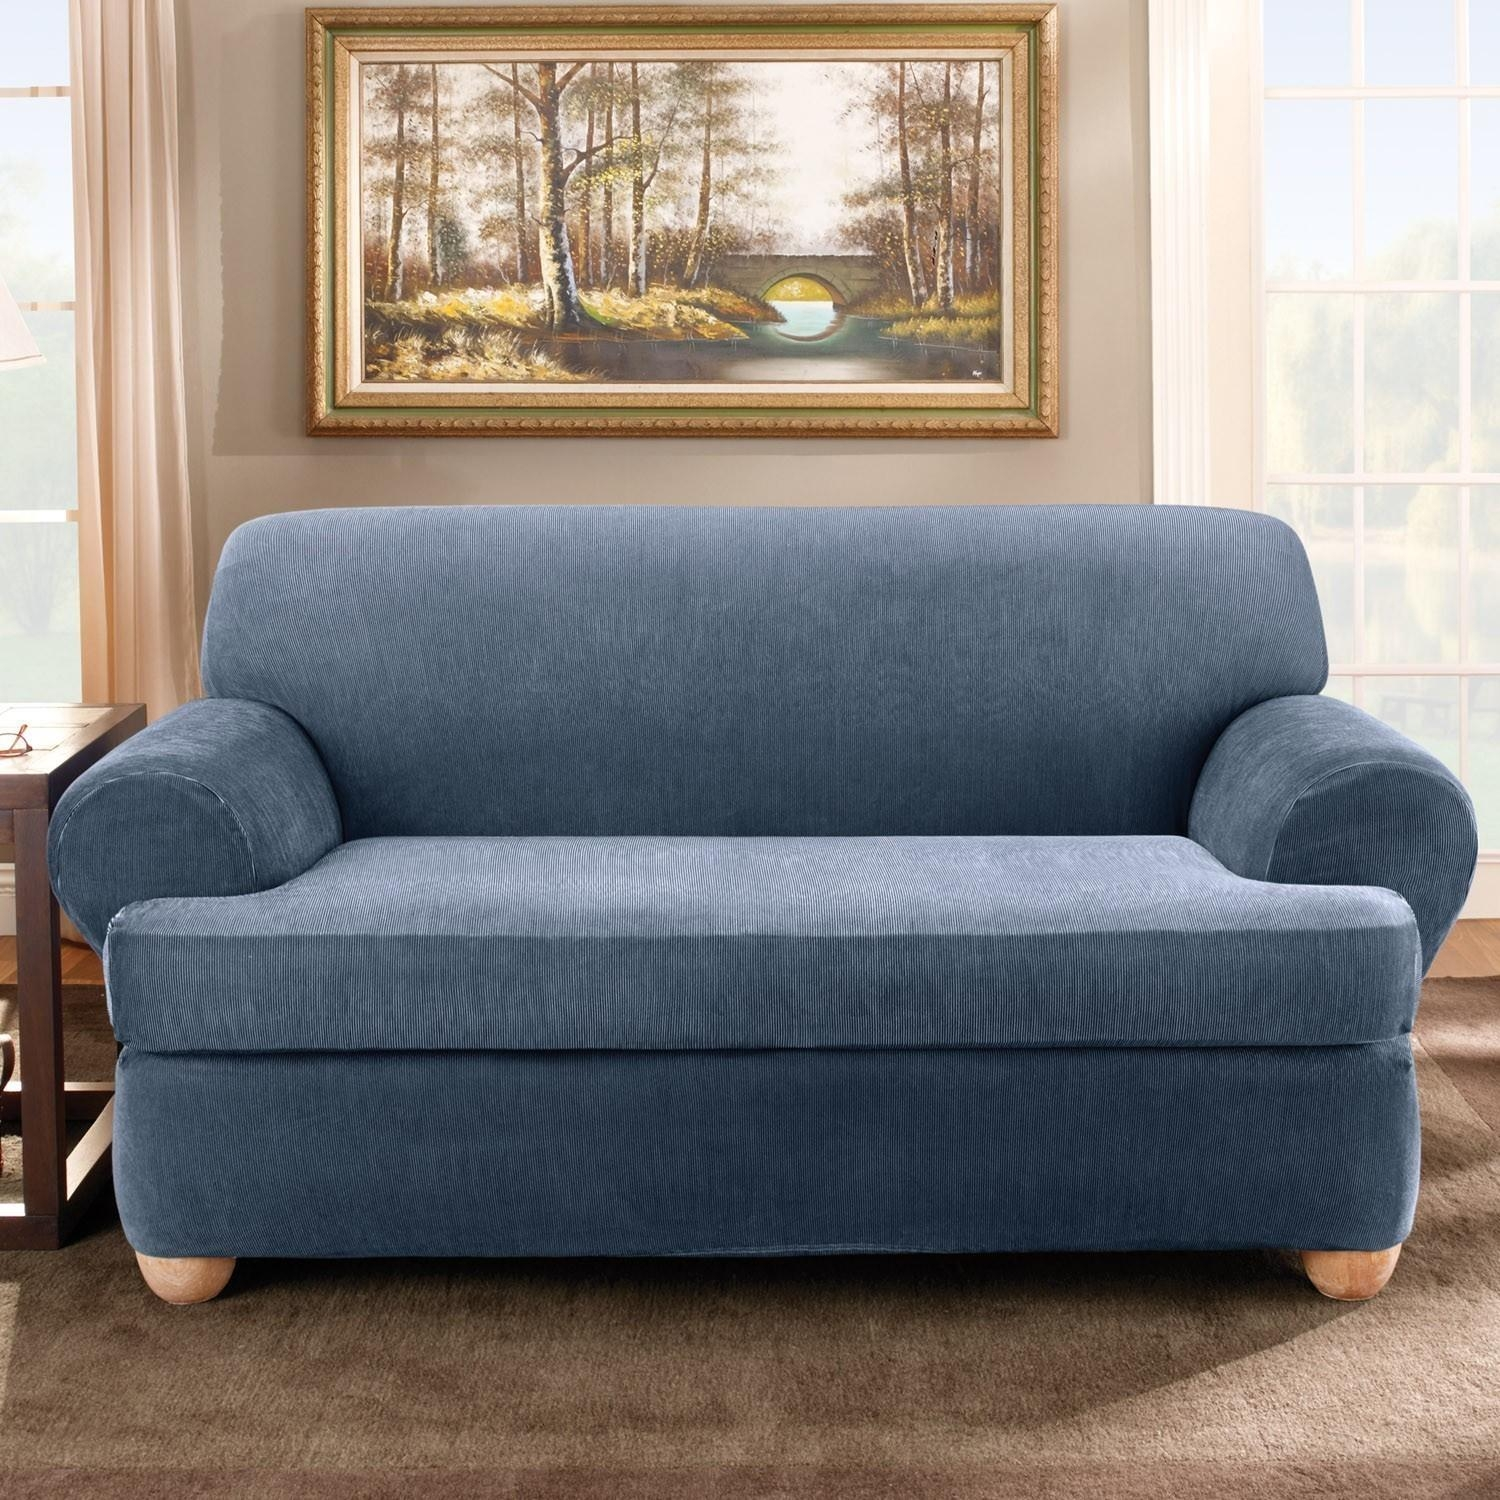 Cushions Covers Separate Fitted Sofa